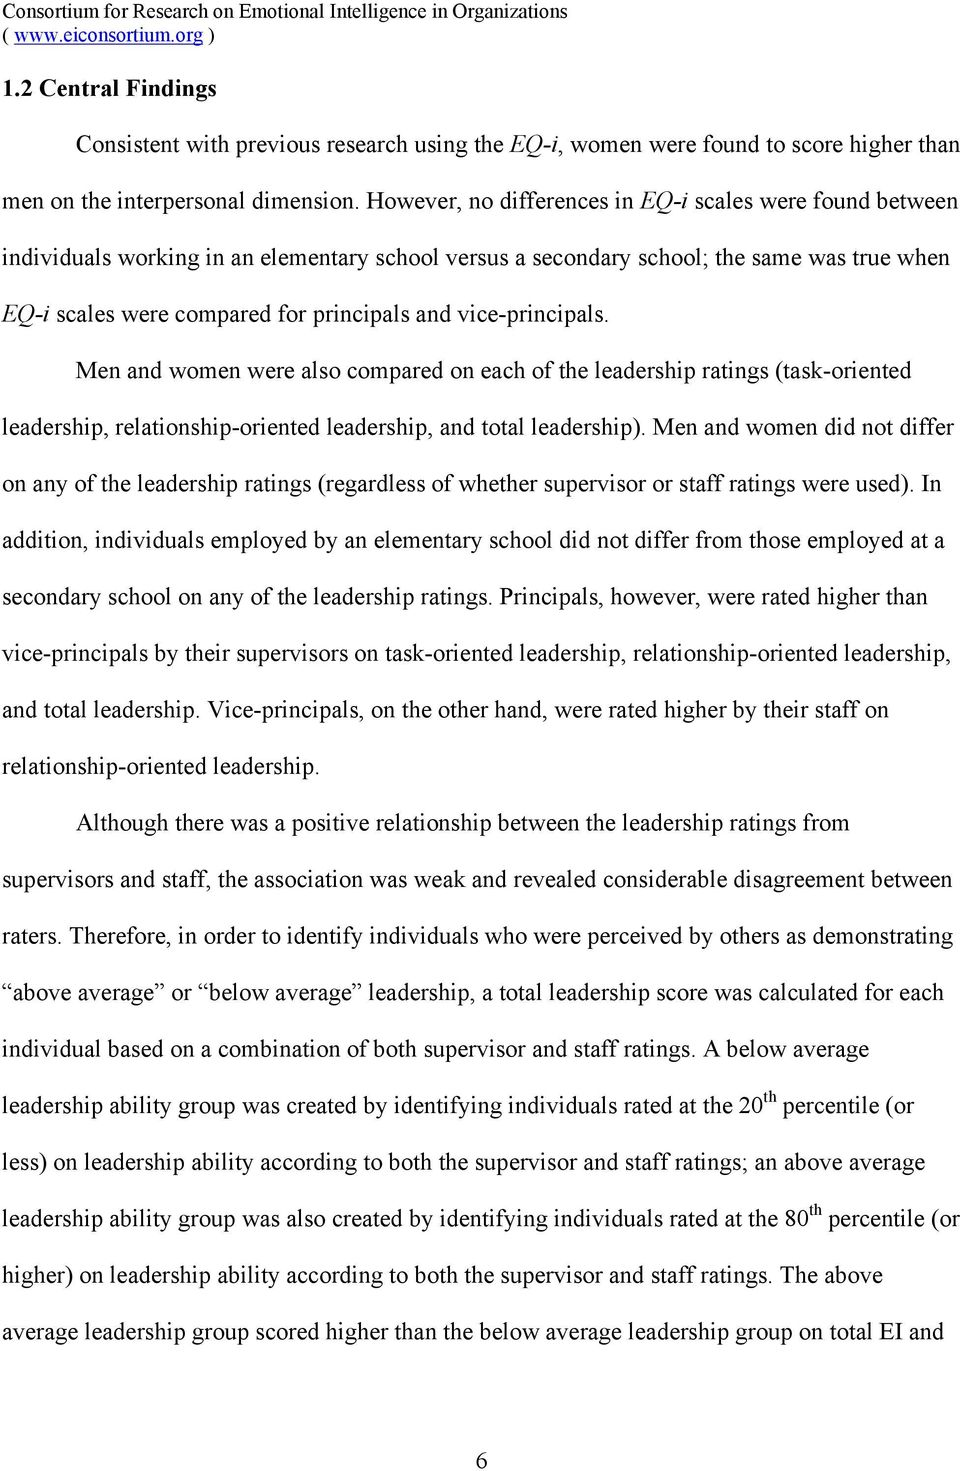 vice-principals. Men and women were also compared on each of the leadership ratings (task-oriented leadership, relationship-oriented leadership, and total leadership).